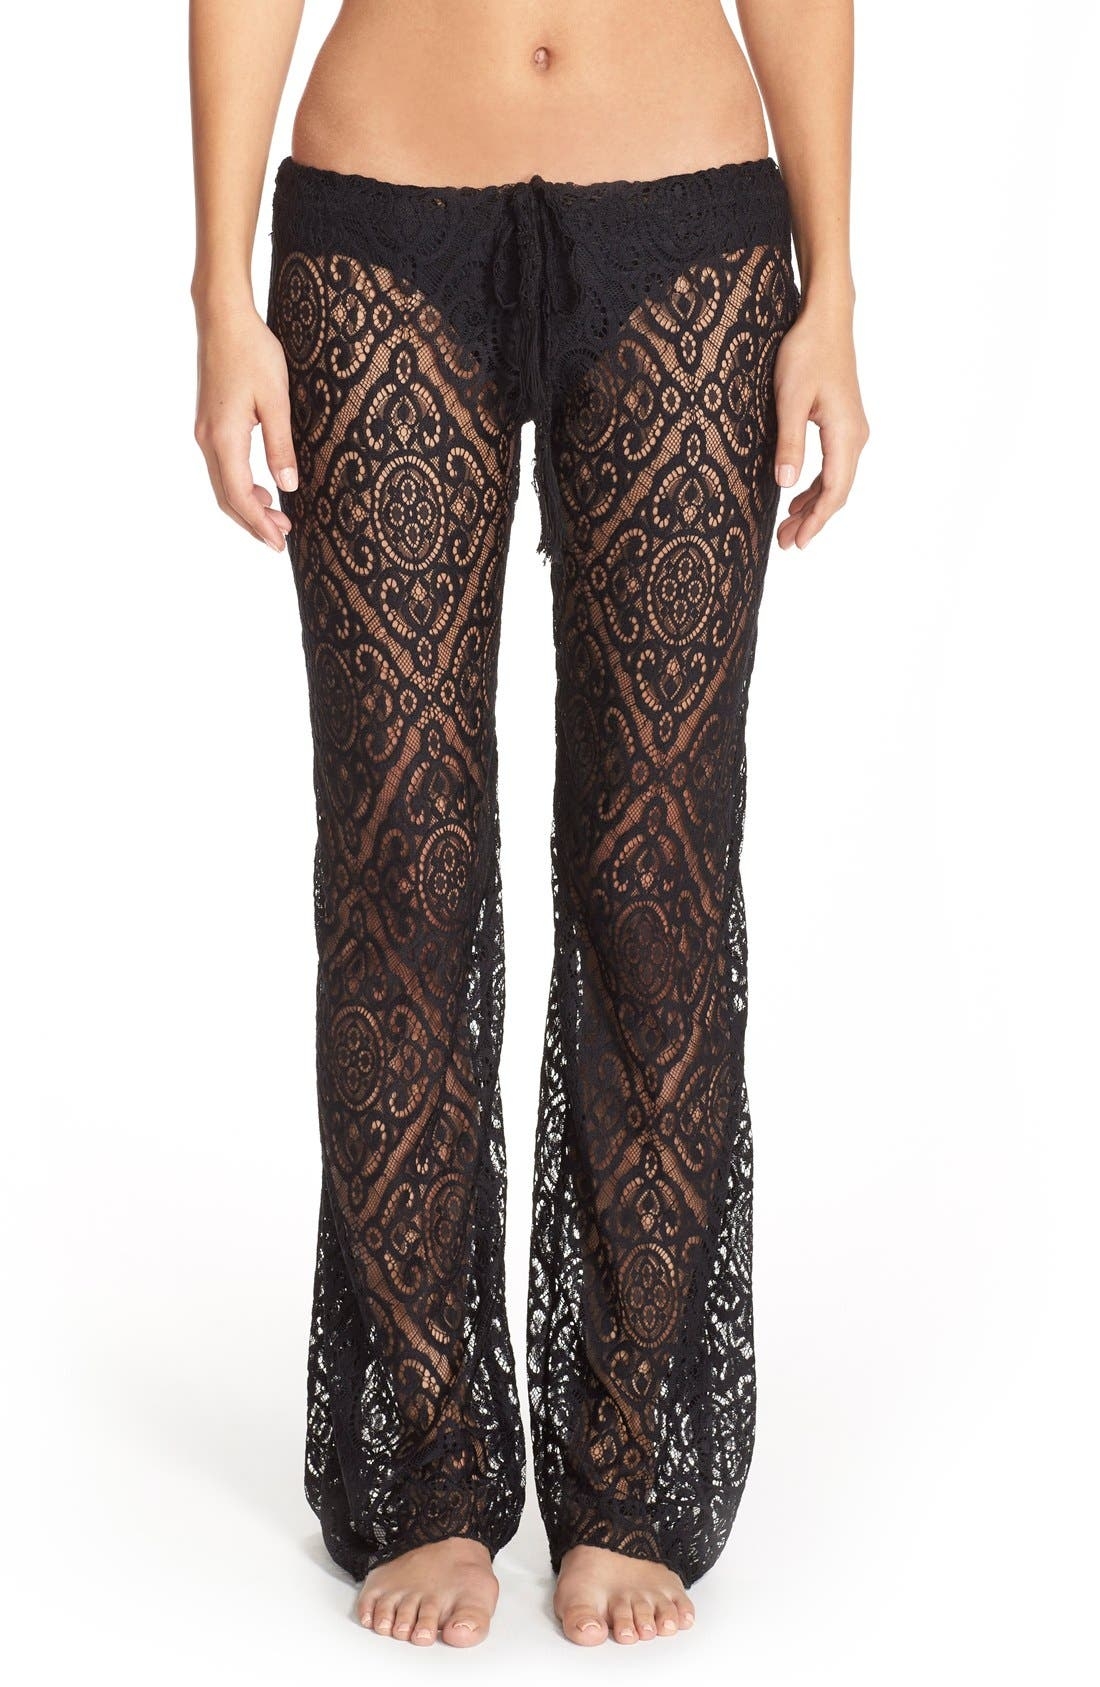 Alternate Image 1 Selected - Becca 'Amore' Lace Swim Cover Up Pants